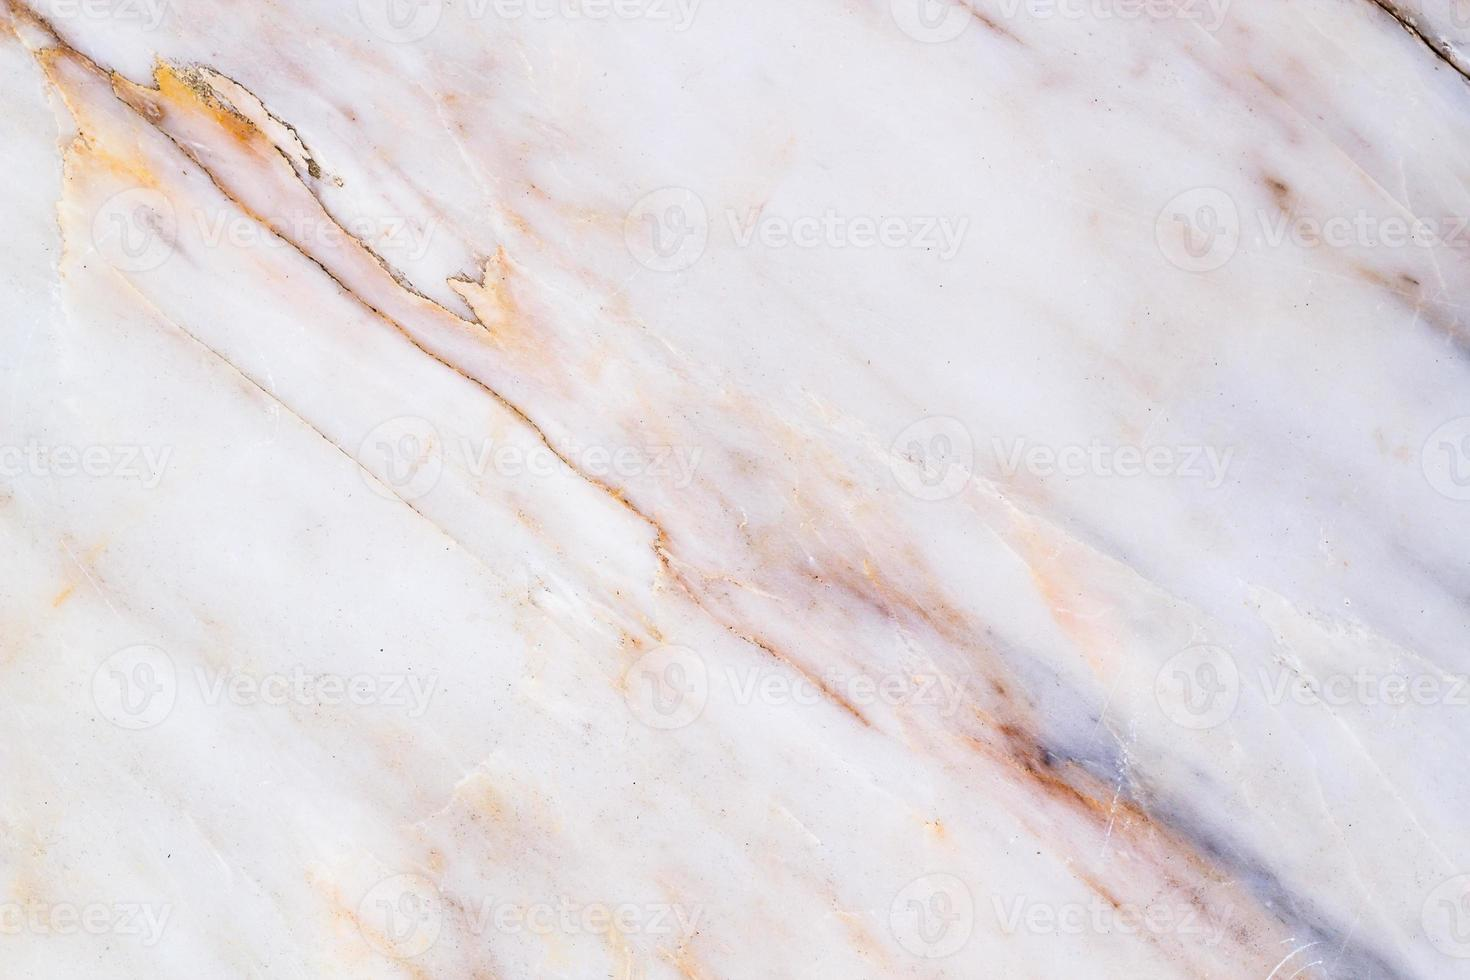 Marble patterned texture background photo